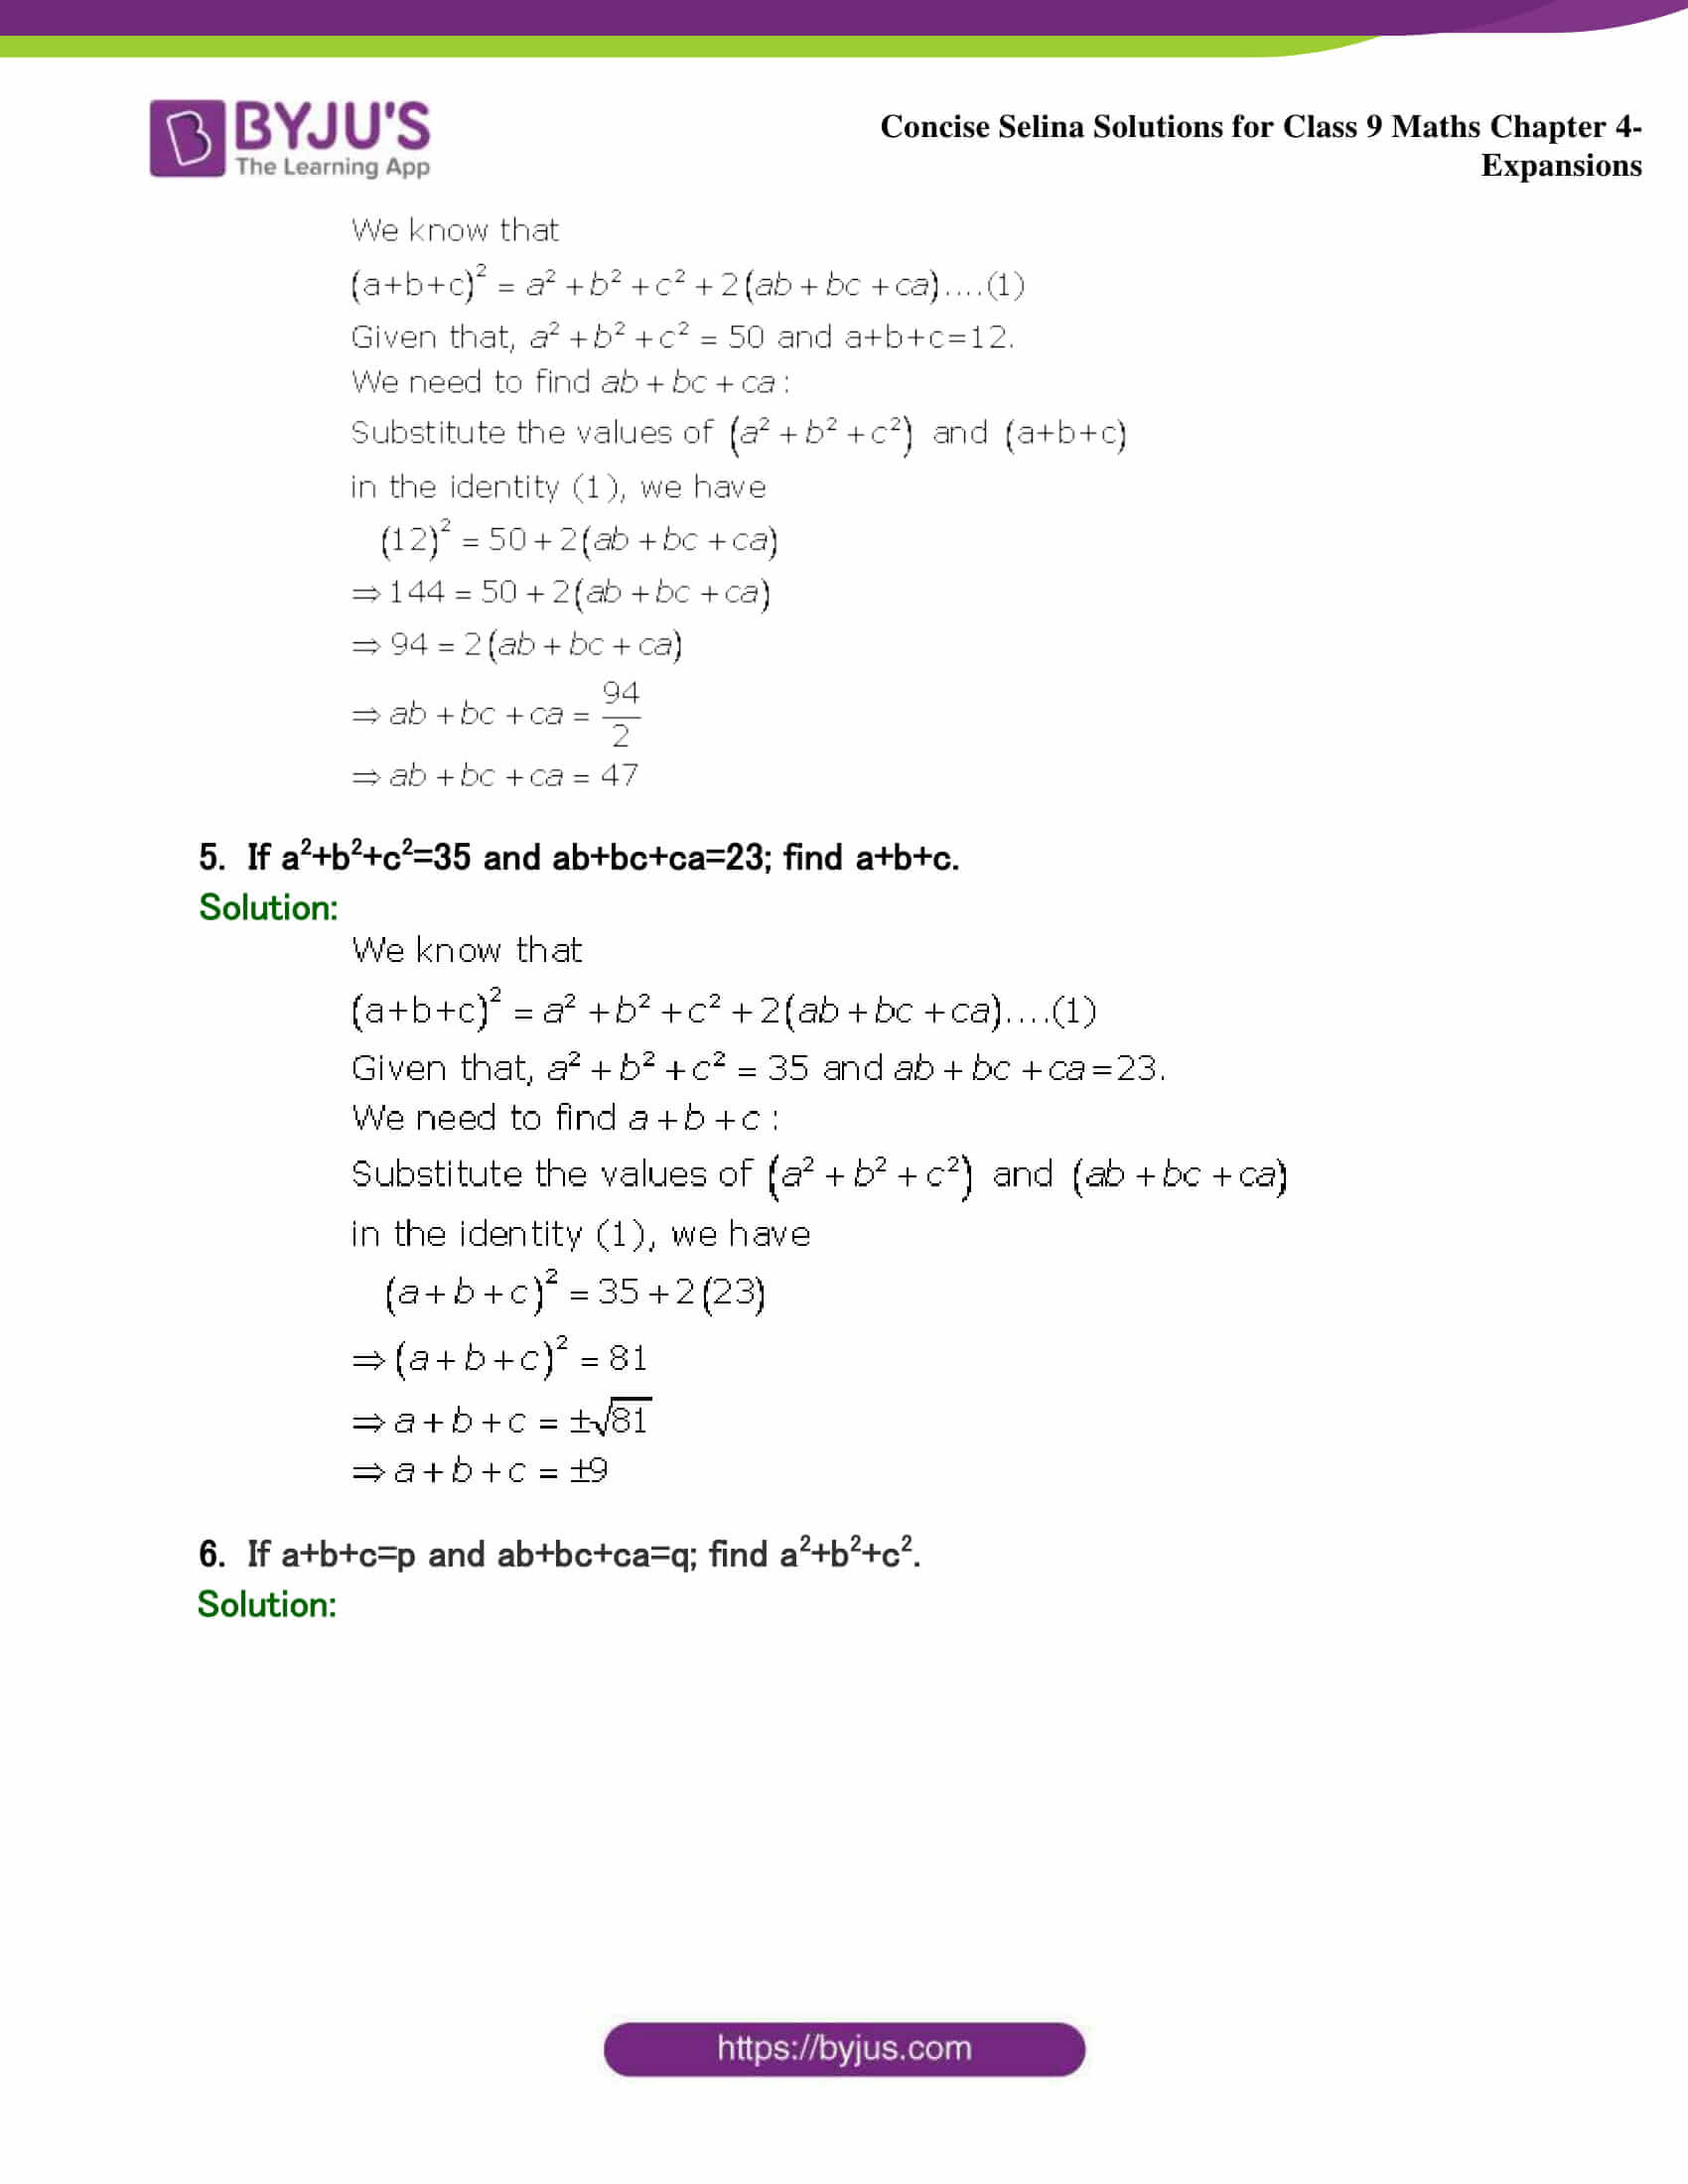 Selina Solutions Class 9 Maths Chapter 4 Expansions part 28